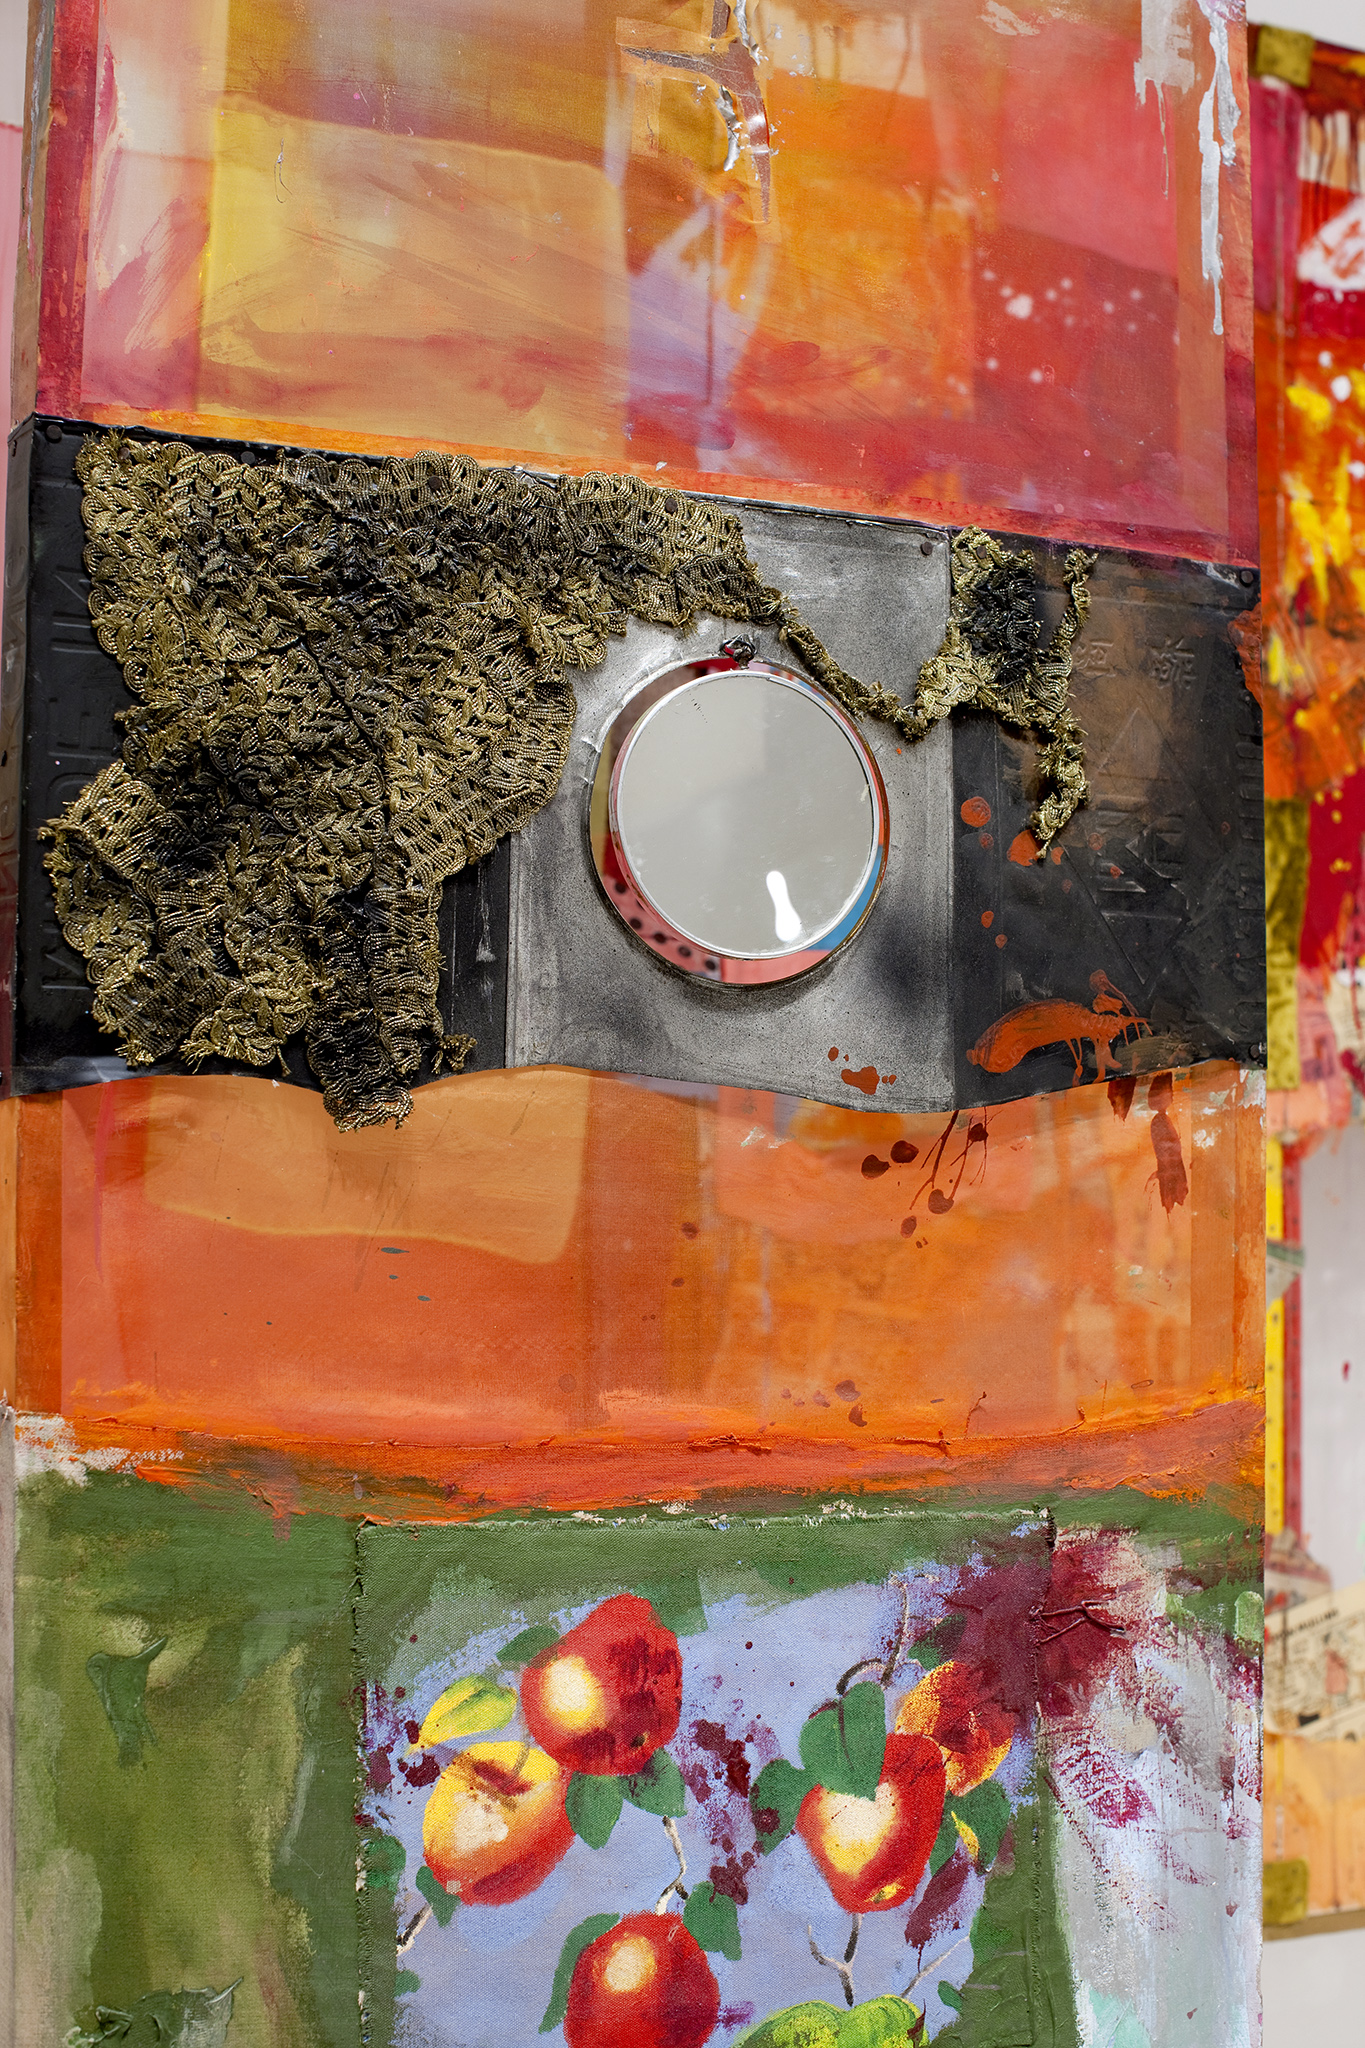 Robert Rauschenberg Décor for Minutiae 1954/1976 oil, paper, fabric, newsprint, wood, metal, and plastic with mirror and string, on wood 84 ½ x 81 x 30 ½ in. (214.63 x 205 x 77.47 cm) Walker Art Center, Merce Cunningham Dance Company Collection, Gift of Jay F. Ecklund, the Barnett and Annalee Newman Foundation, Agnes Gund, Russell Cowles and Josine Peters, the Hayes Fund of HRK Foundation, Dorothy Lichtenstein, MAHADH Fund of HRK Foundation, Goodale Family Foundation, Marion Stroud Swingle, David Teiger, Kathleen Fluegel, Barbara G. Pine, and the T. B. Walker Acquisition Fund, 2011.